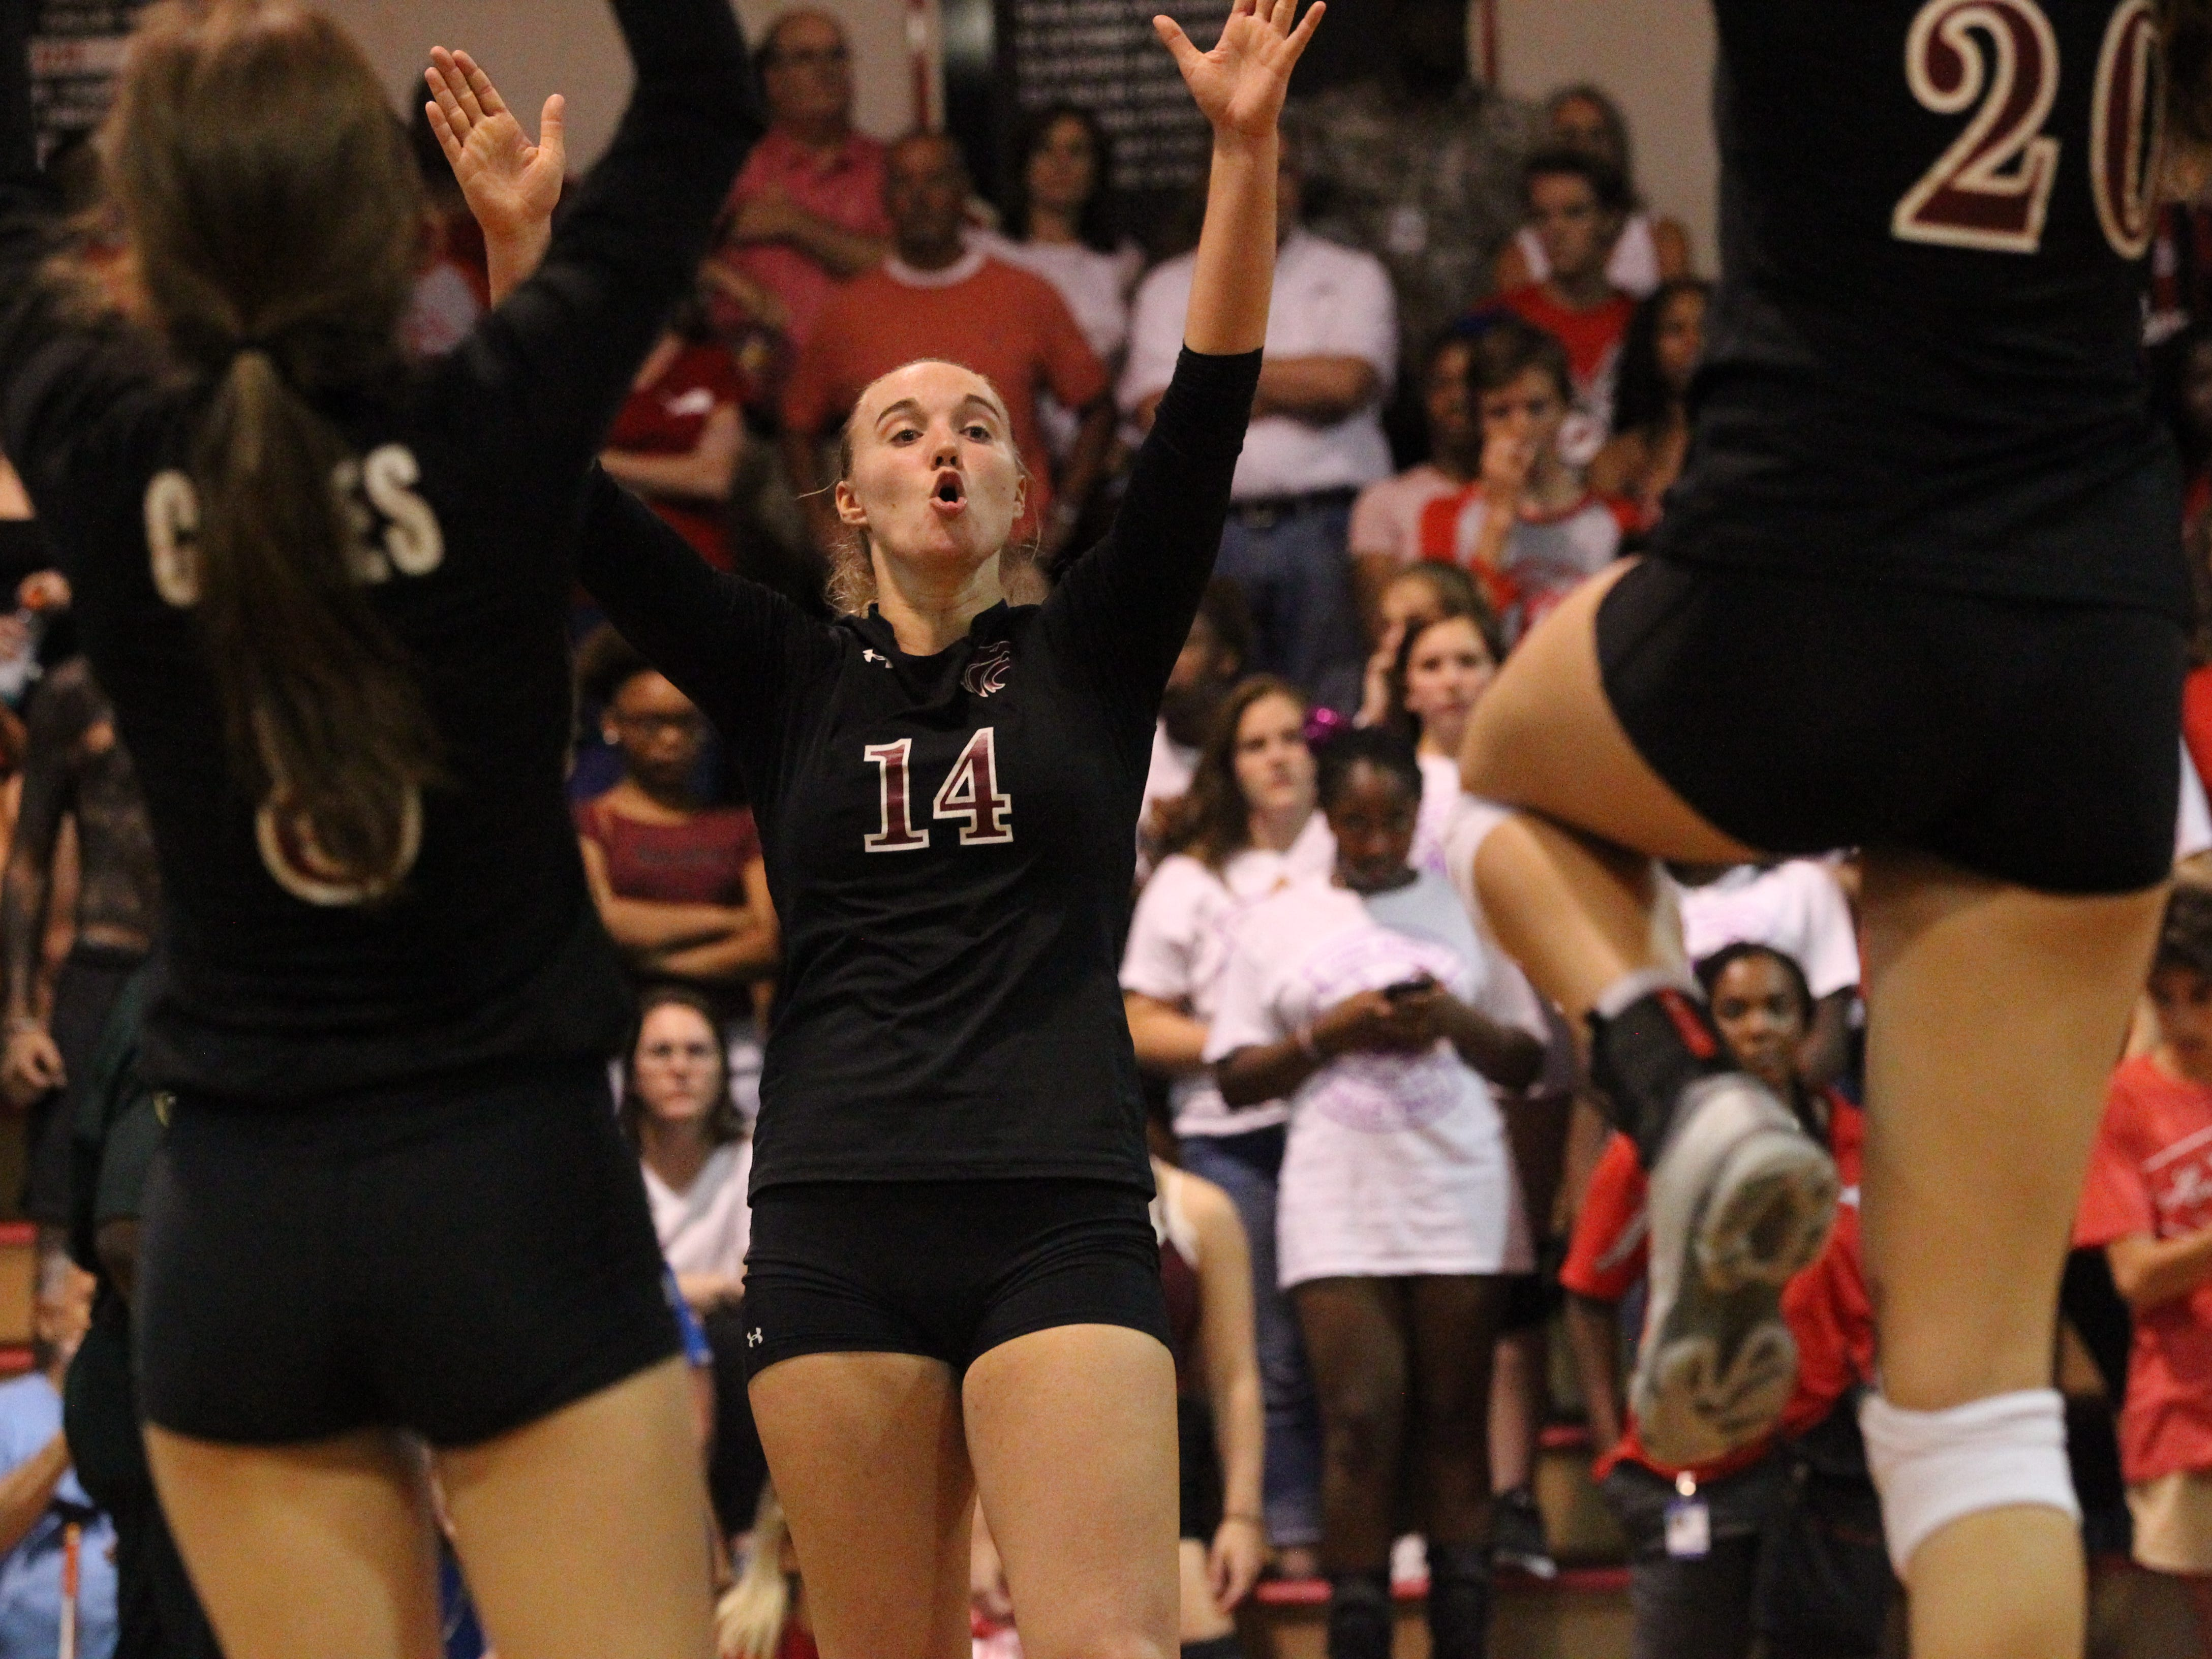 Chiles' Aly Freeland reacts to scoring a point as Leon beat Chiles 3-0 on Thursday night in a District 2-8A volleyball game.